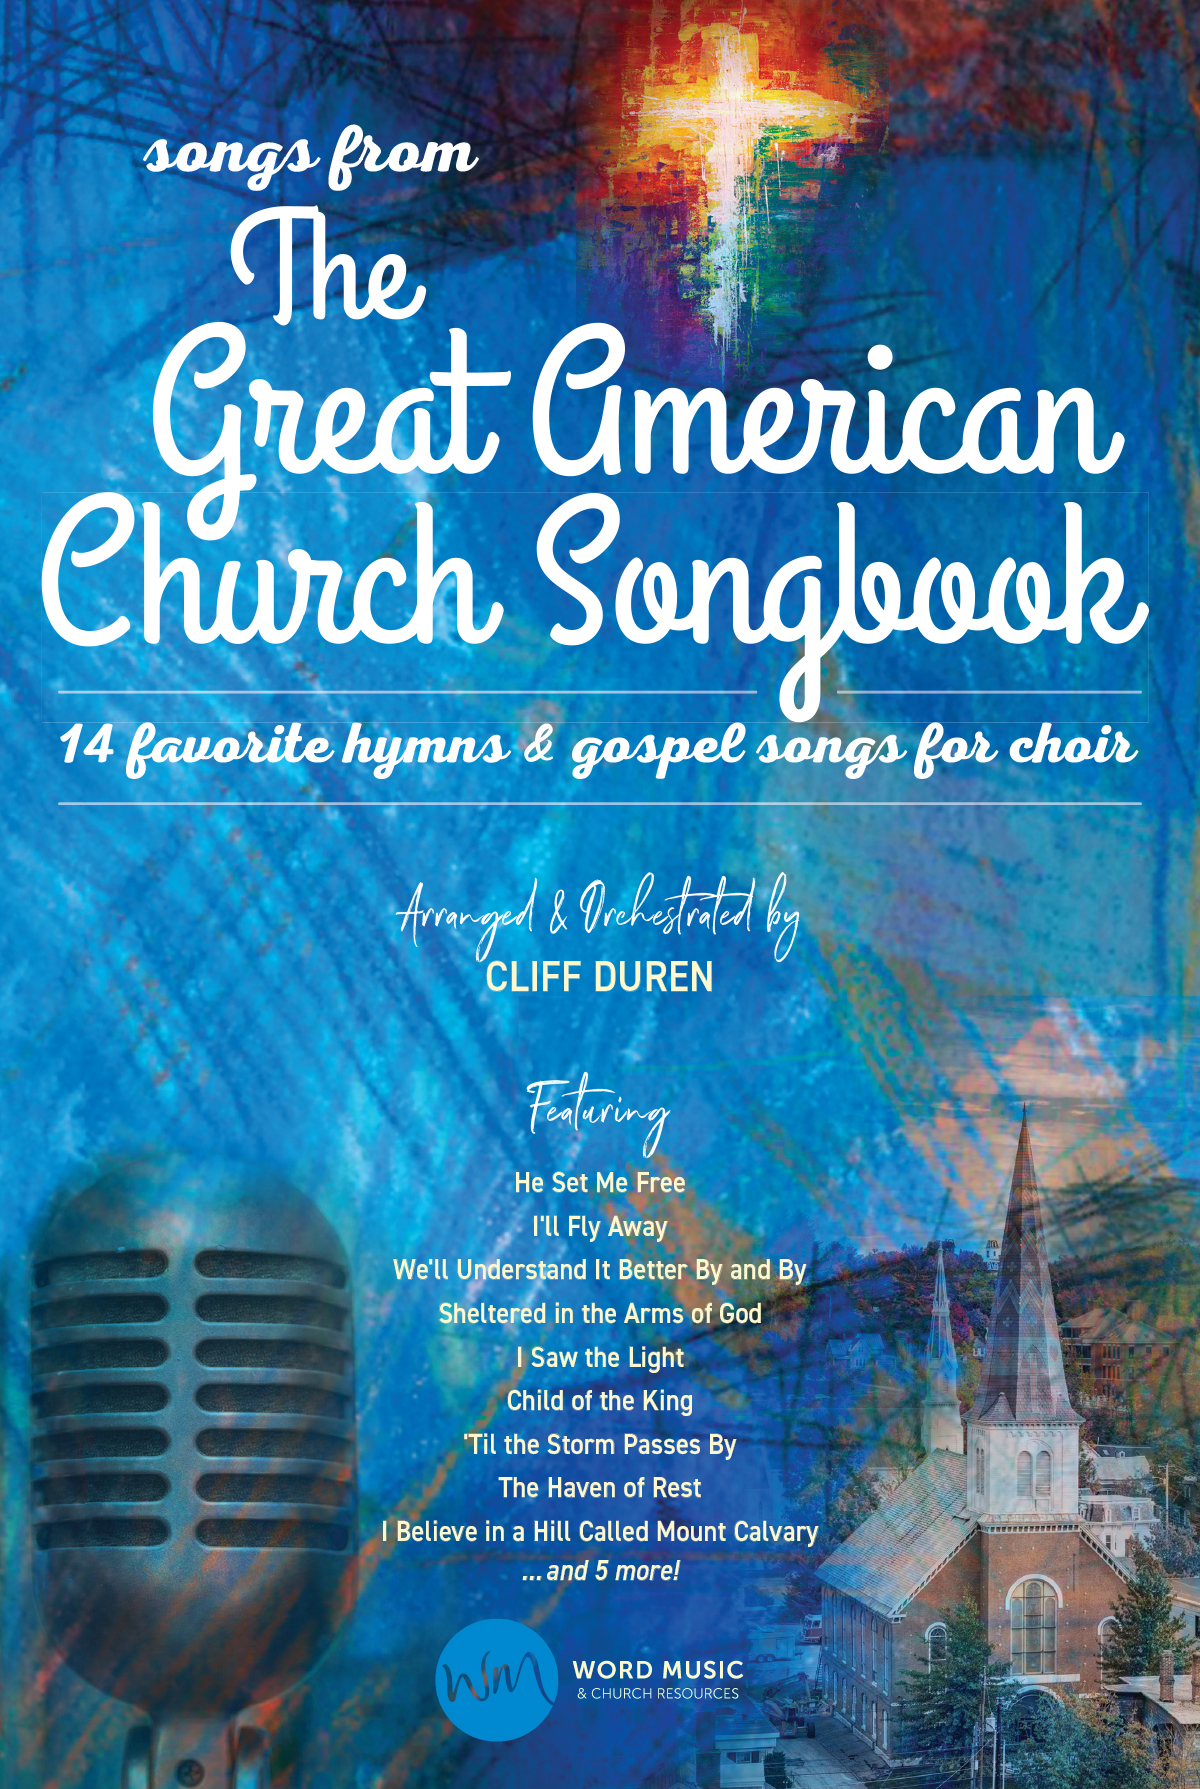 The Great American Church Songbook